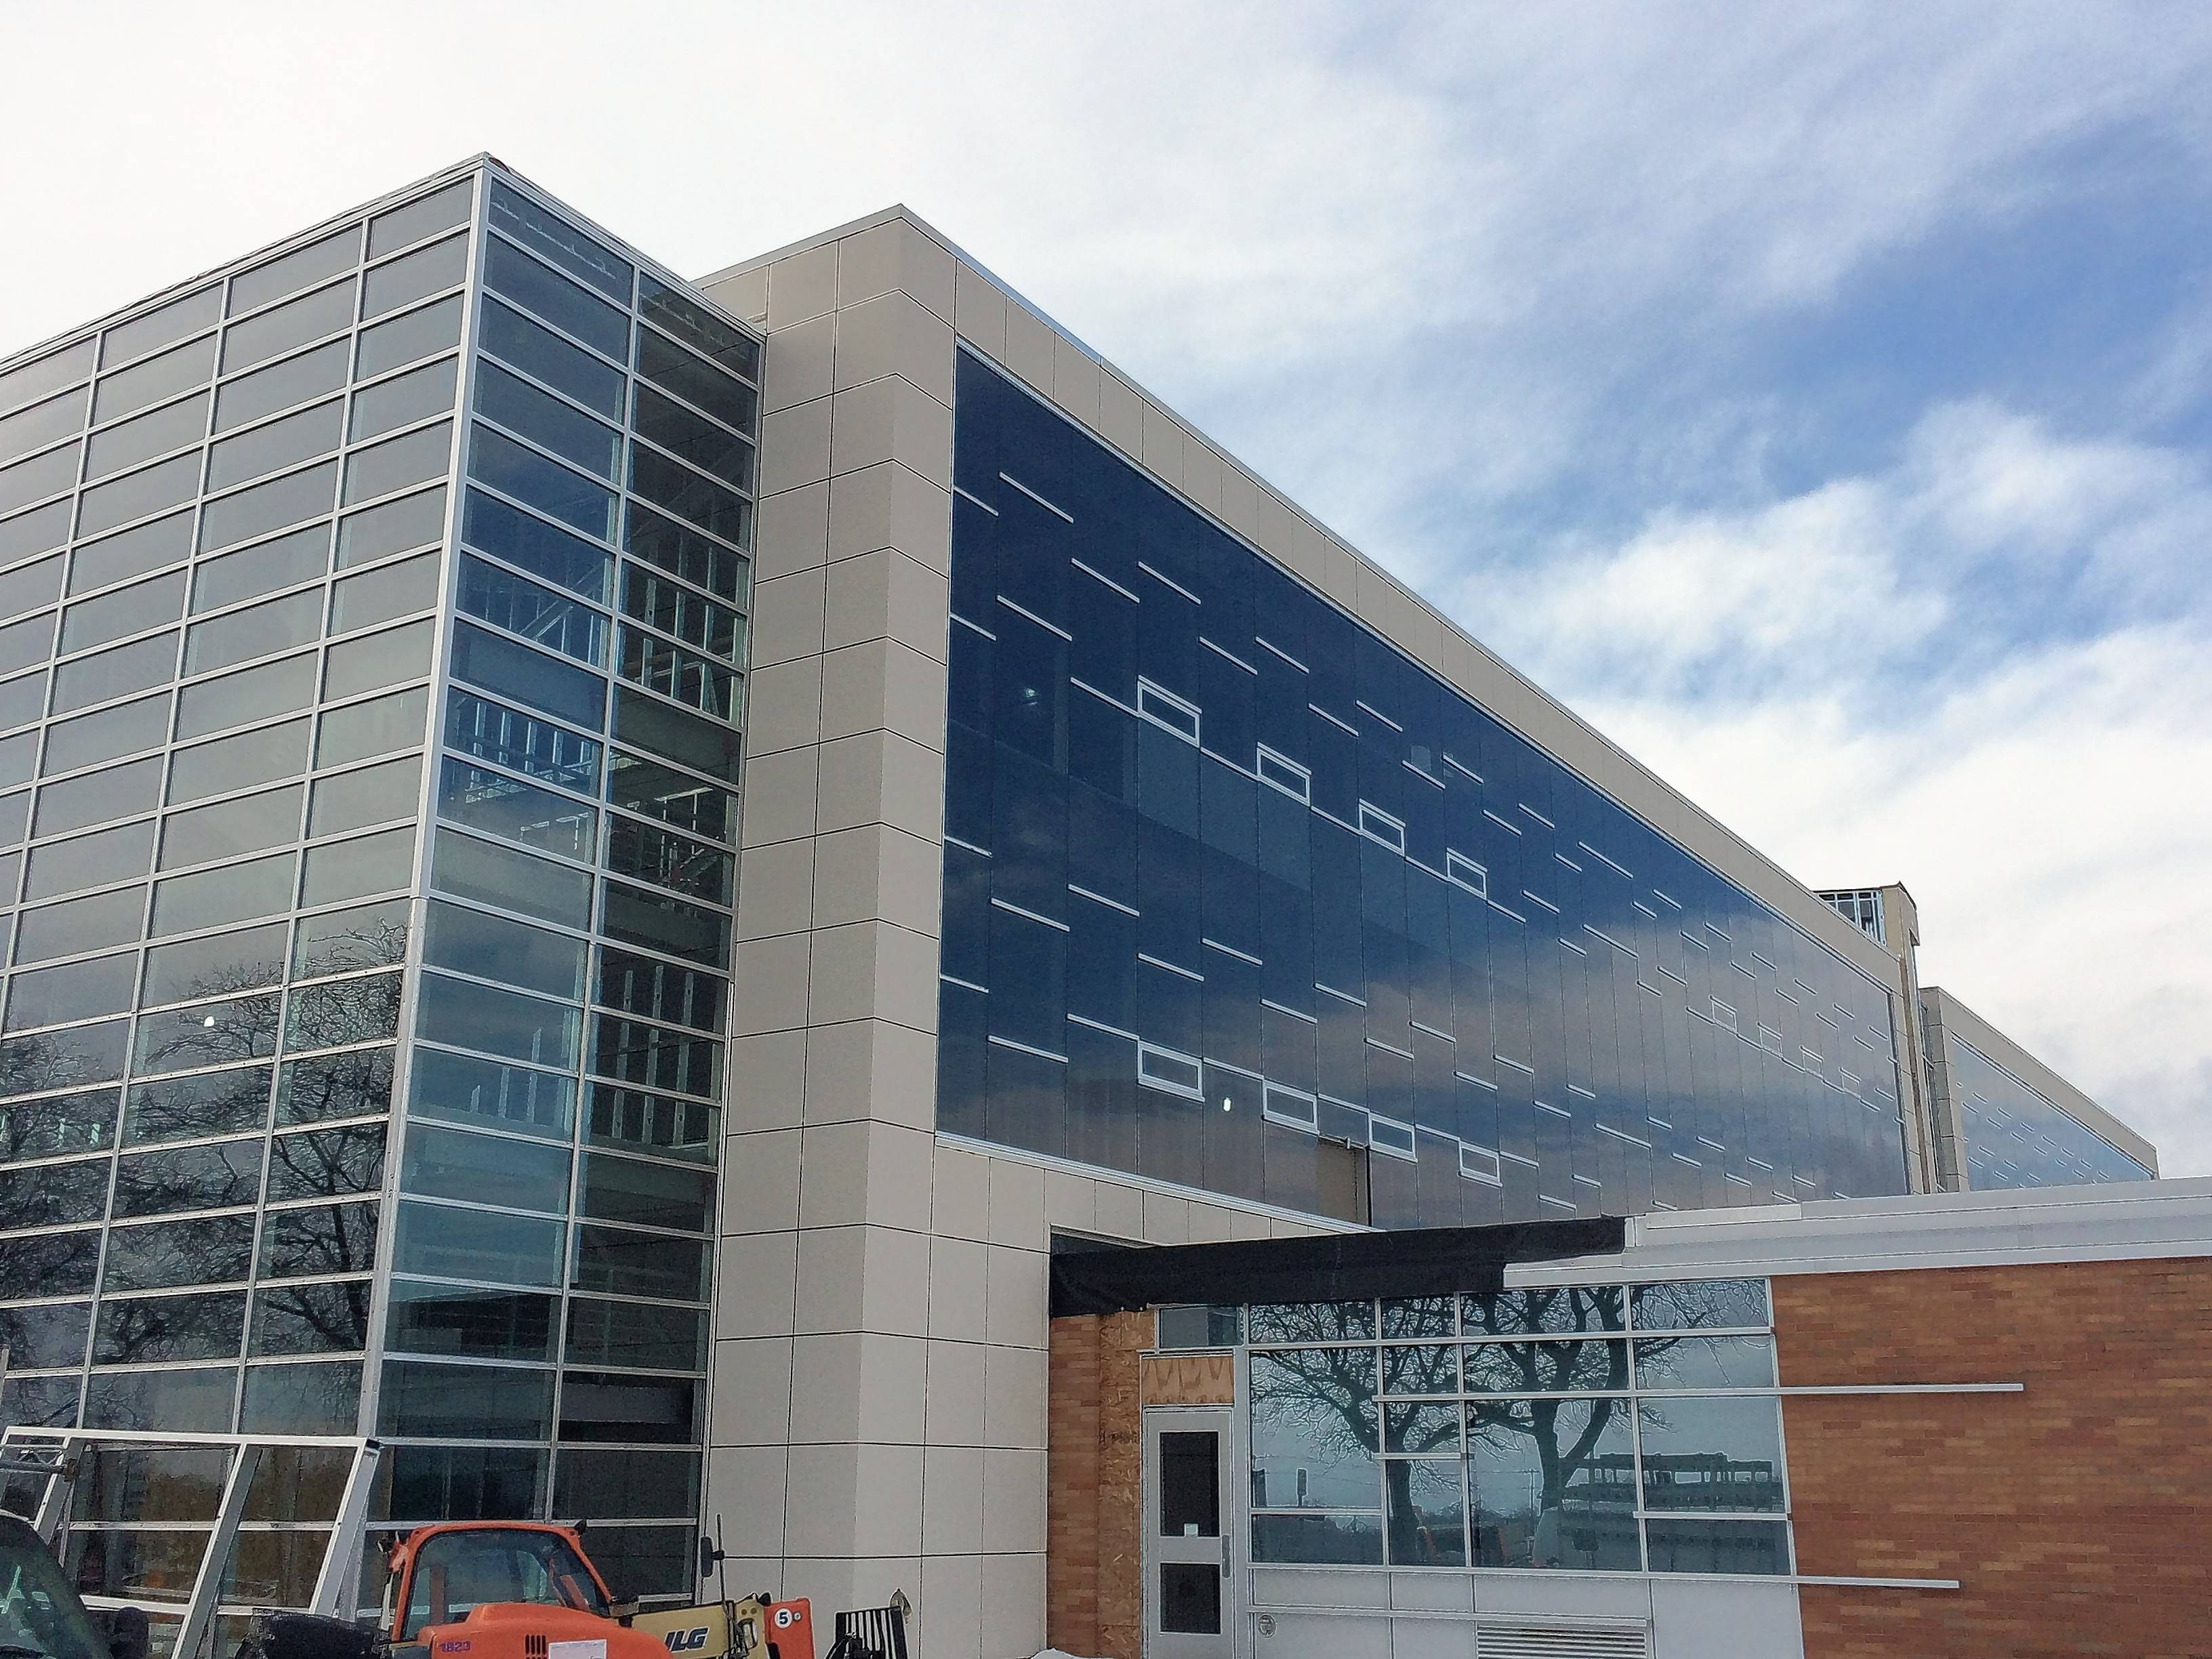 New STEM wing rising at Mundelein High School